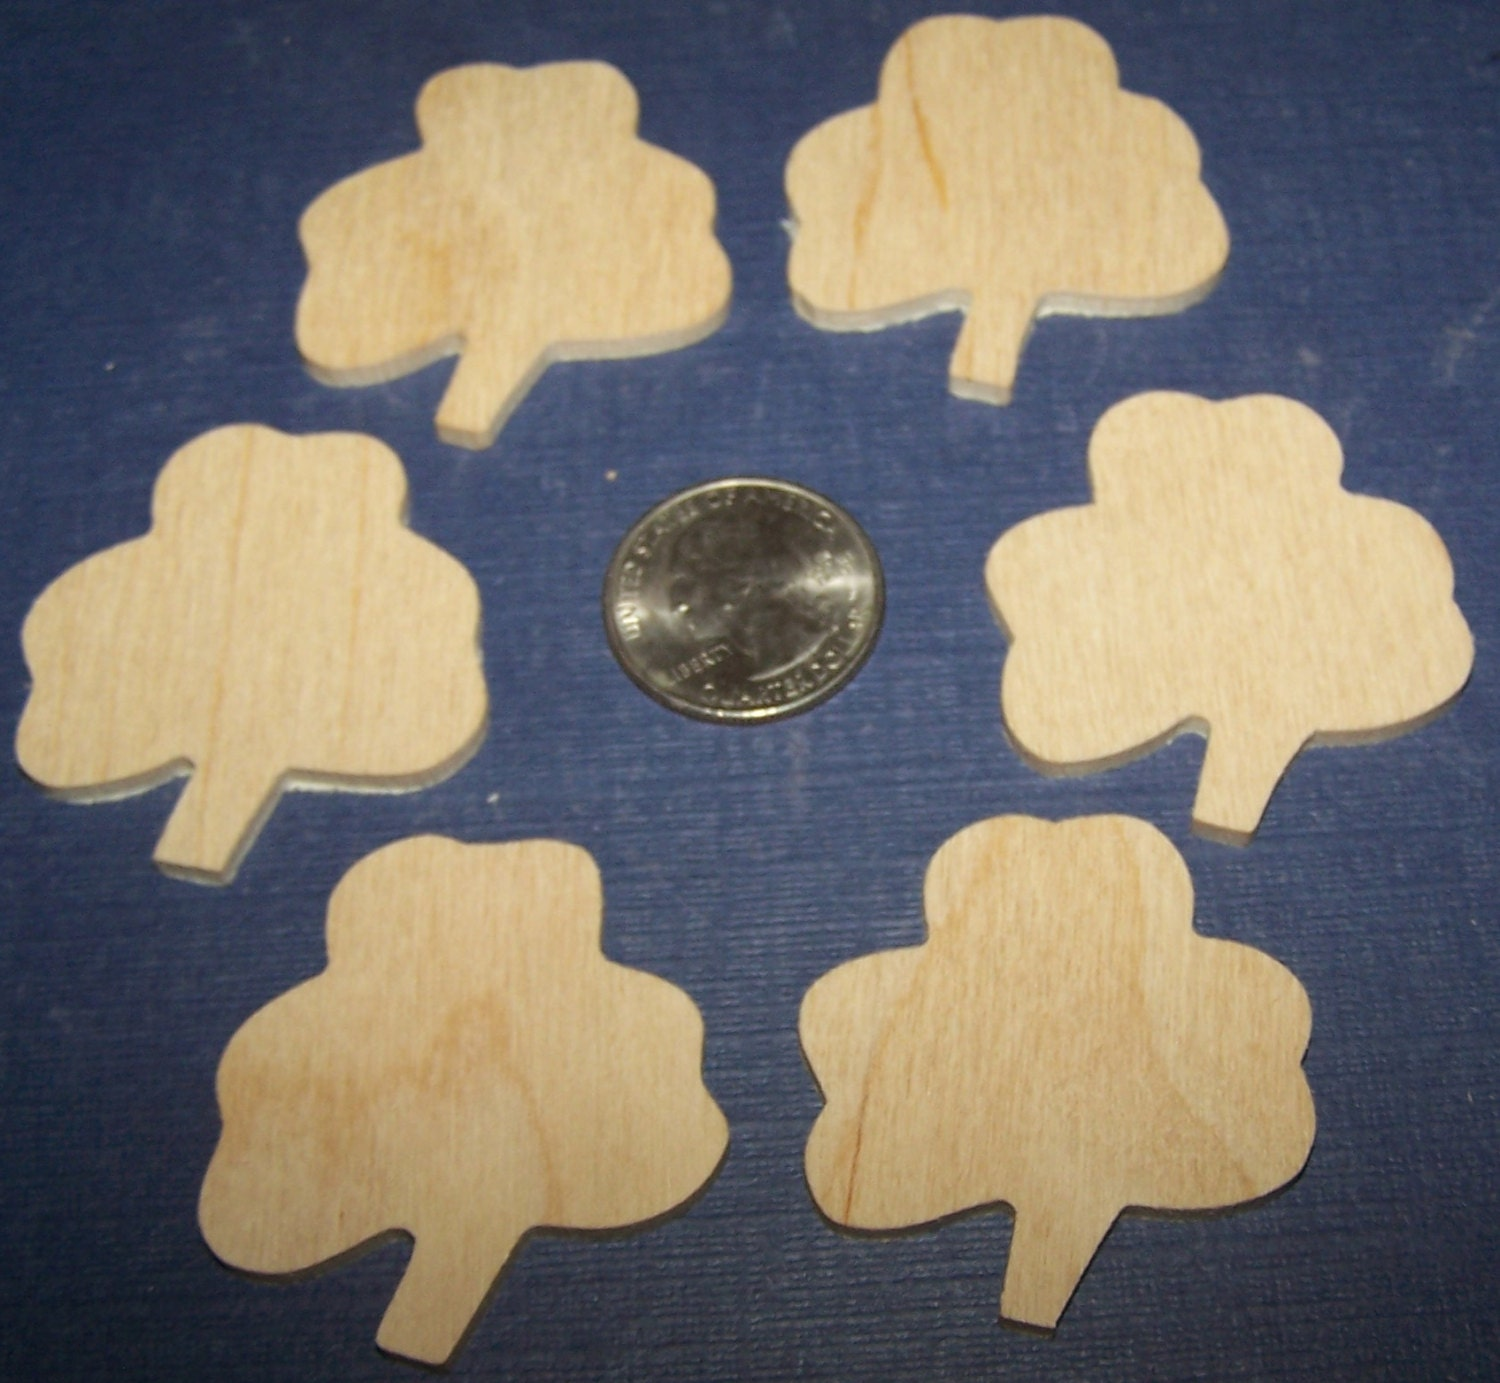 Wooden shamrock unfinished pieces set of 6 1 1 2 x 1 for Unfinished wood pieces for crafts